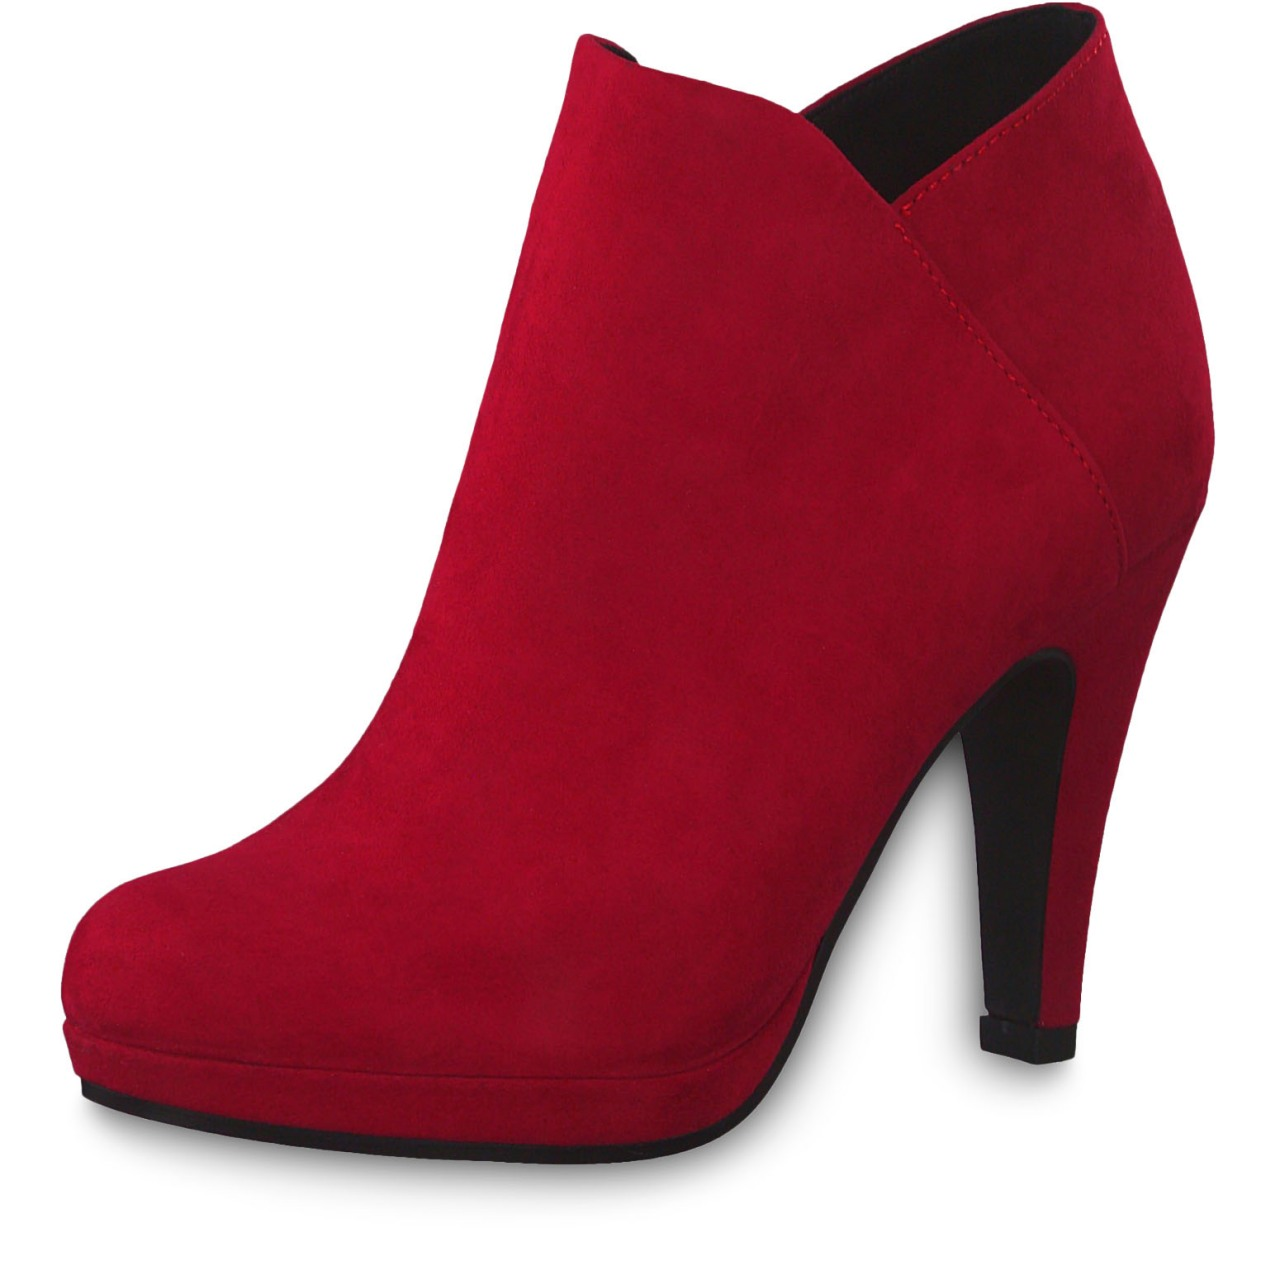 Details about Marco Tozzi Ladies Ankle Boots Ankle Boots High Heel 2 25329 33 Red